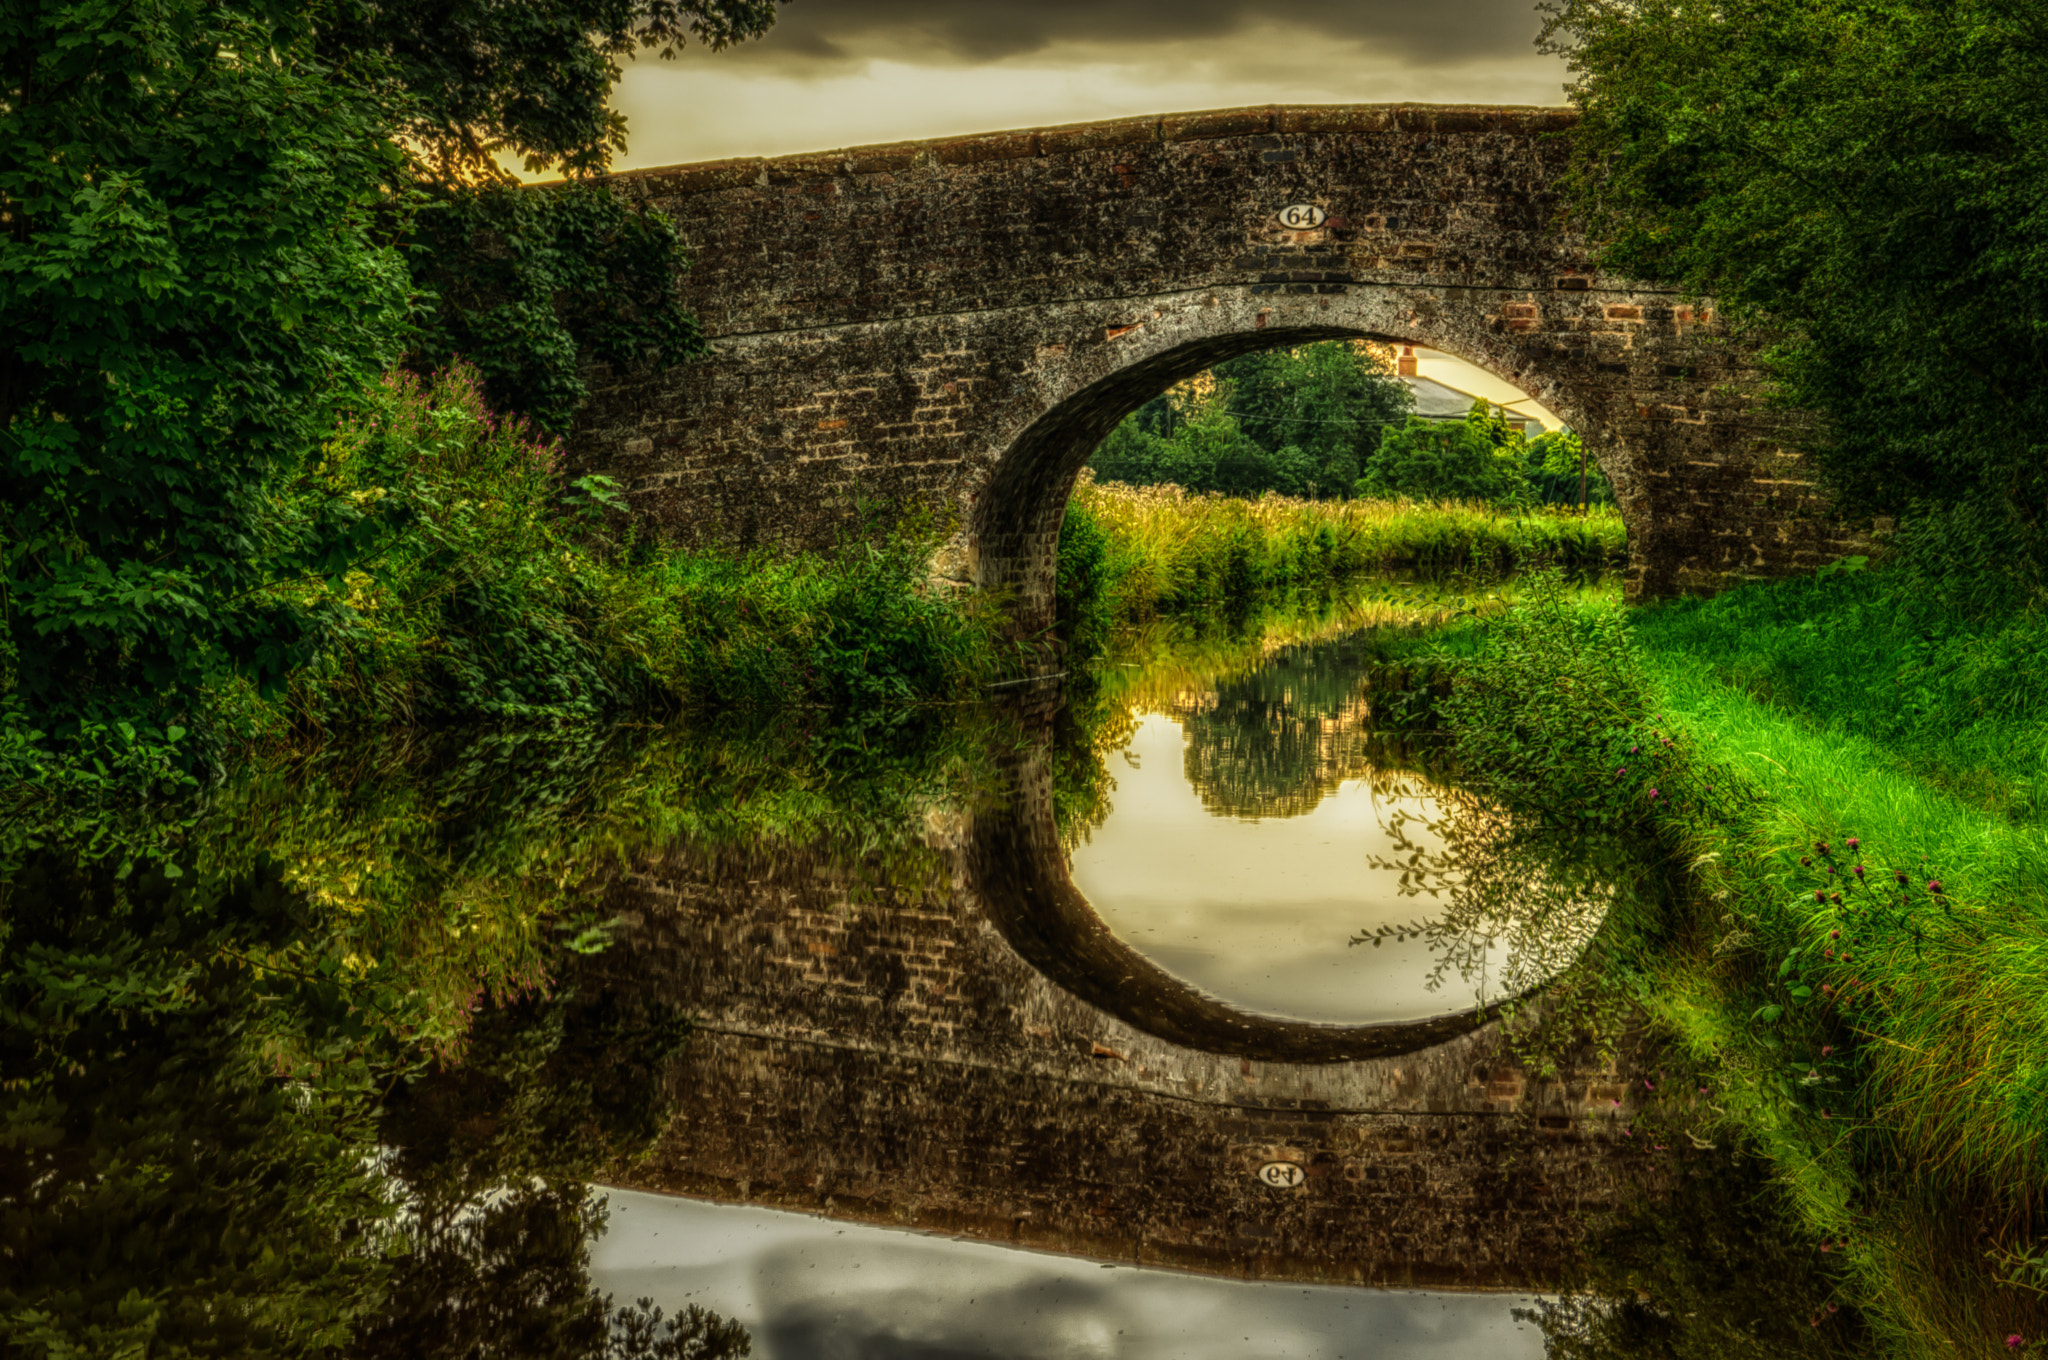 Photograph Bridge 64 by Richard Lockwood on 500px